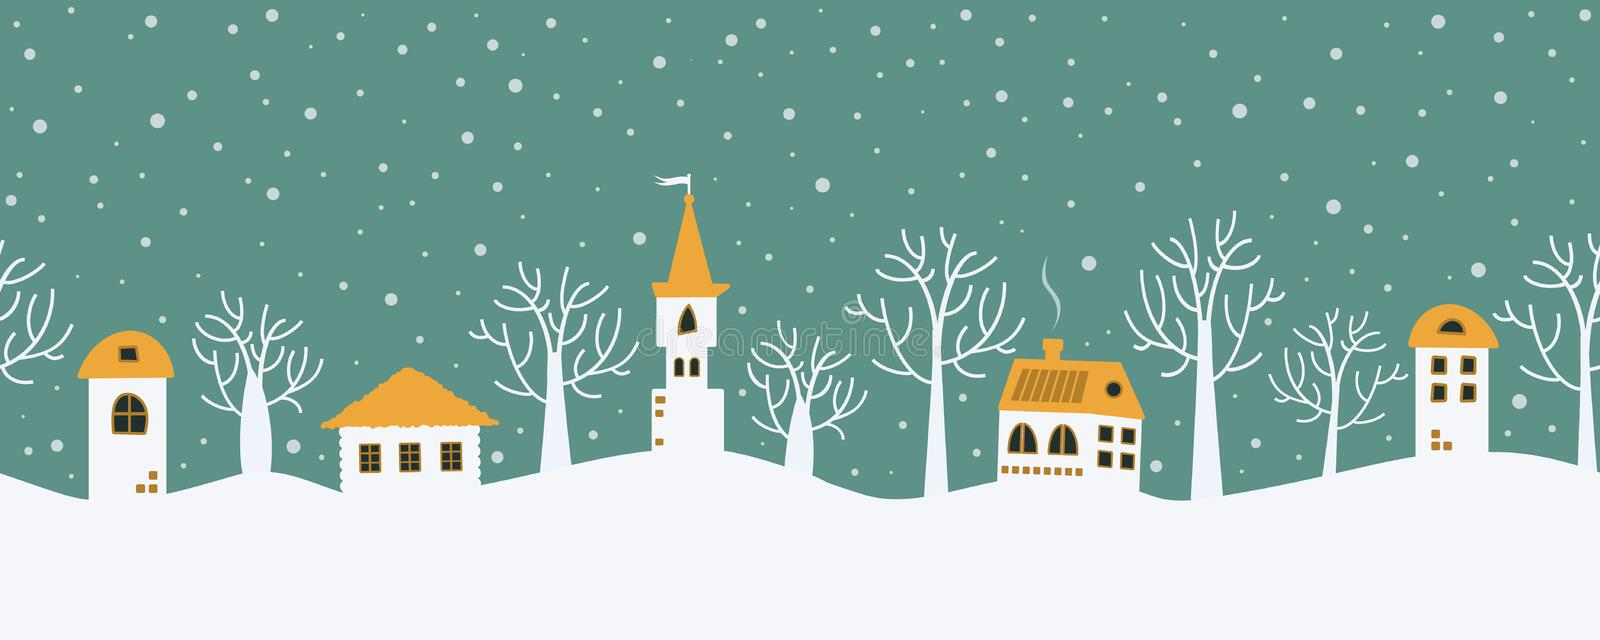 Christmas background. Fairy tale winter landscape. Seamless border vector illustration